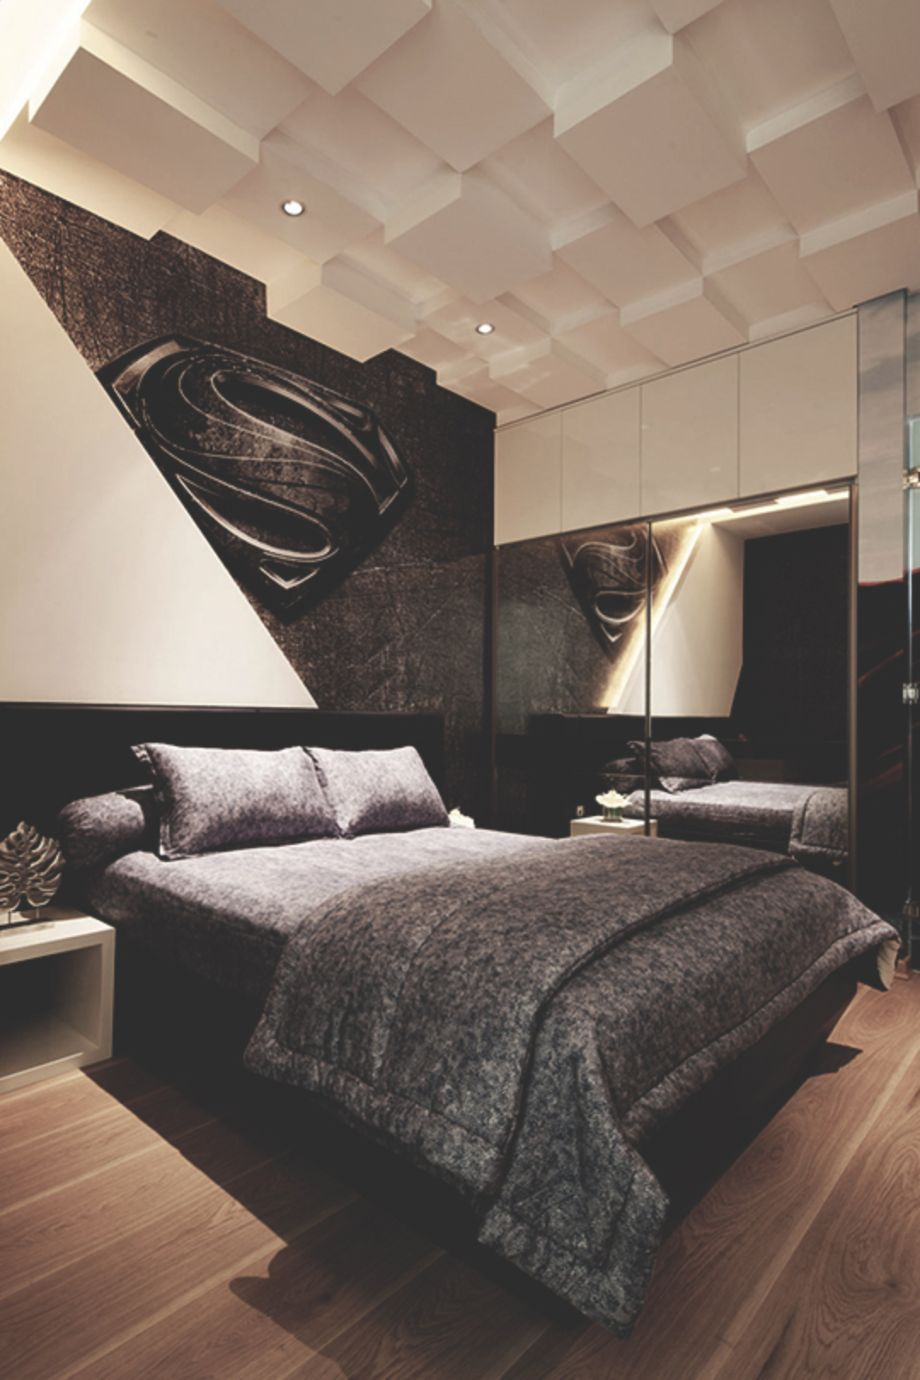 Bedroom Accessories For Men Creative Property 87 creative apartment decorations ideas for guys | apartments